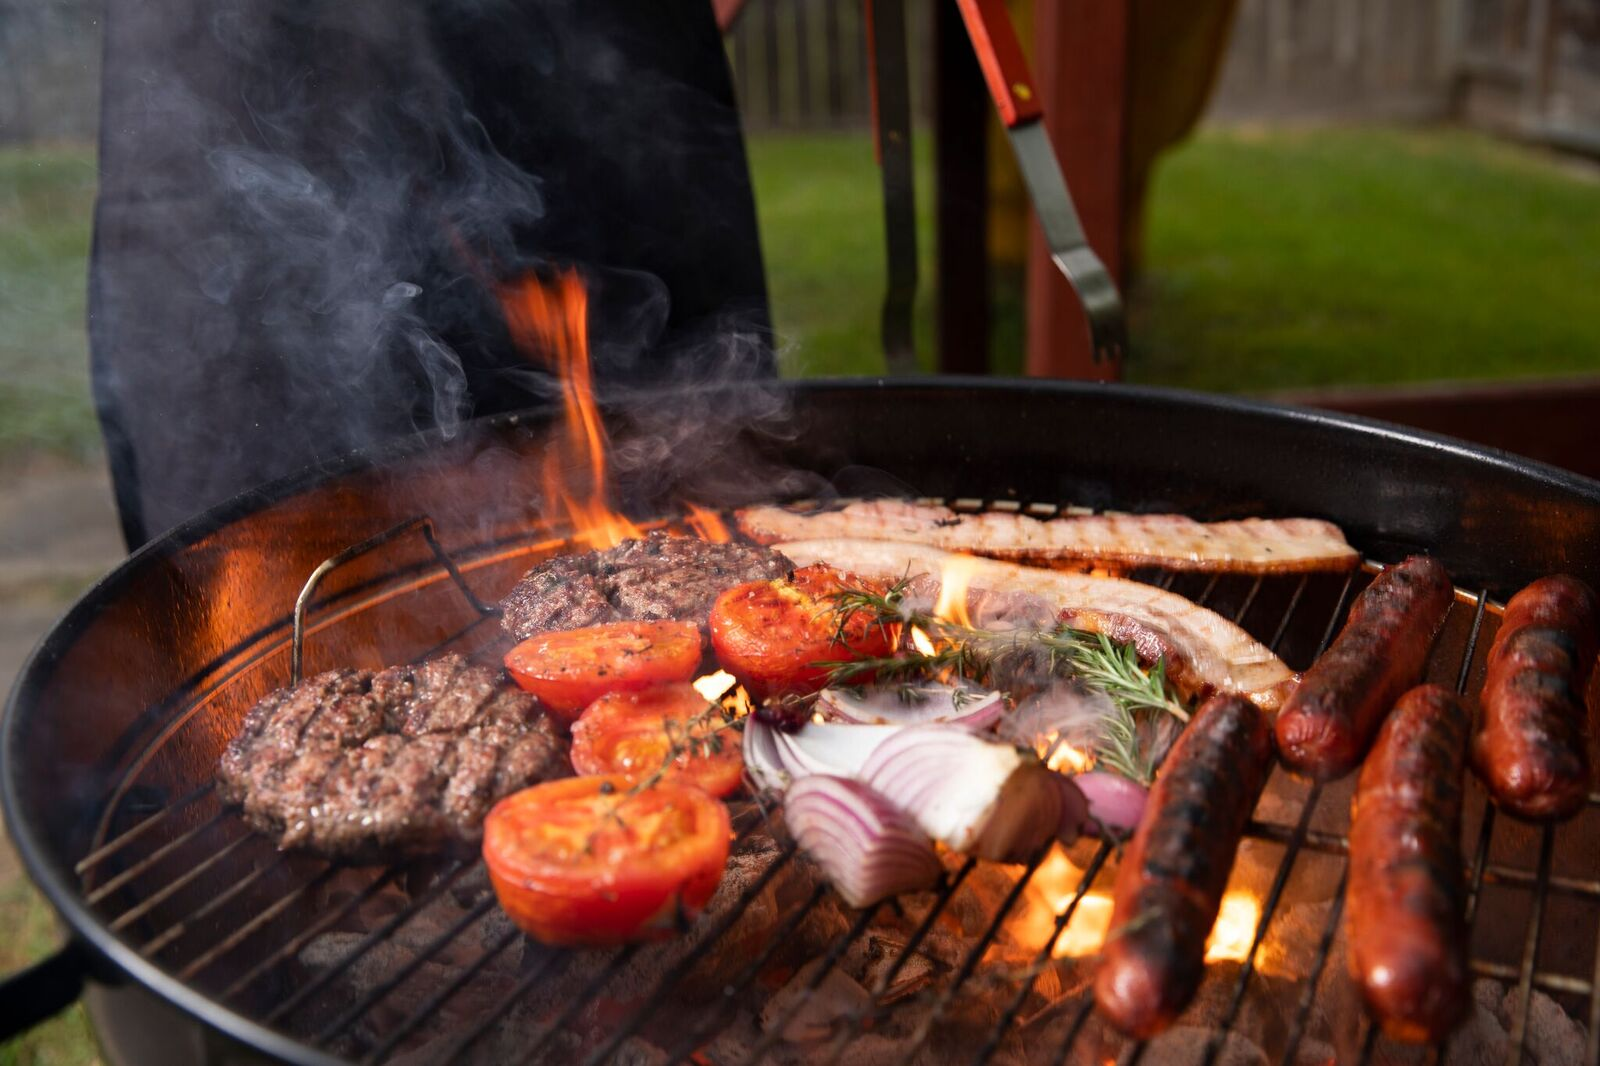 Image of meats on a grill.